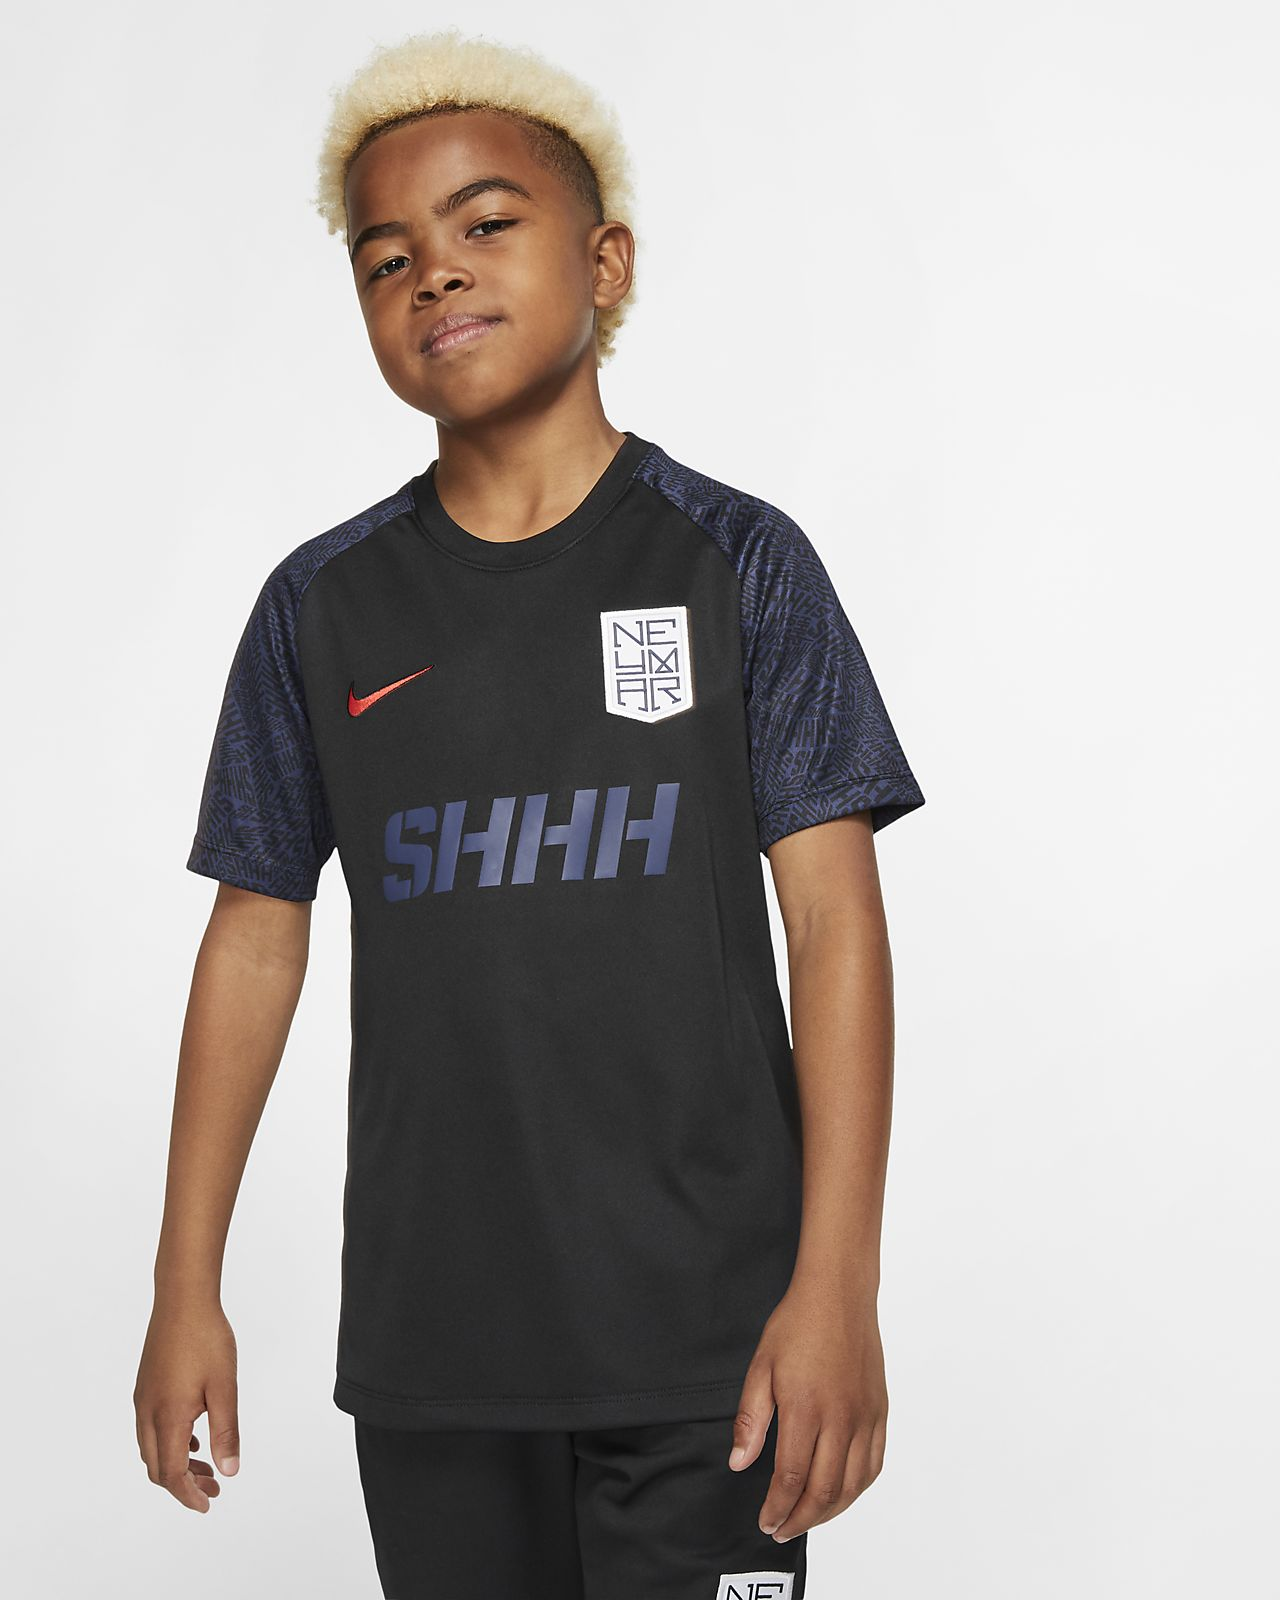 Nike Dri-FIT Neymar Jr. 大童短袖足球上衣